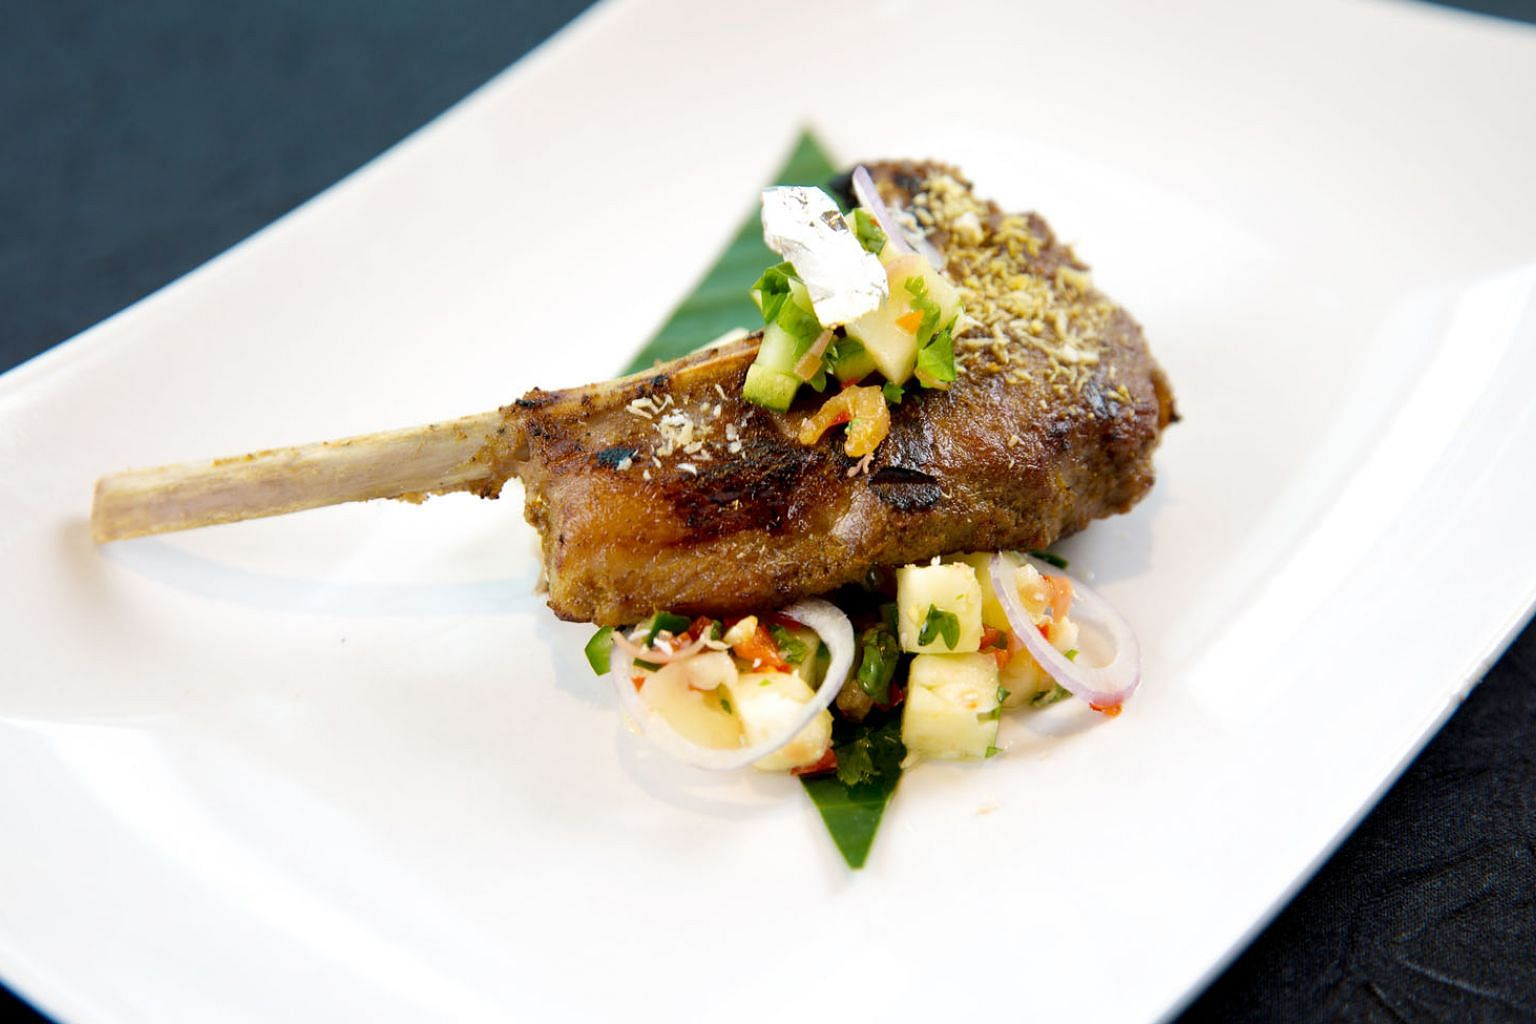 One of the star items is the Rendang Style Lamb Rack with Honey Pineapple Kerabu Salsa.